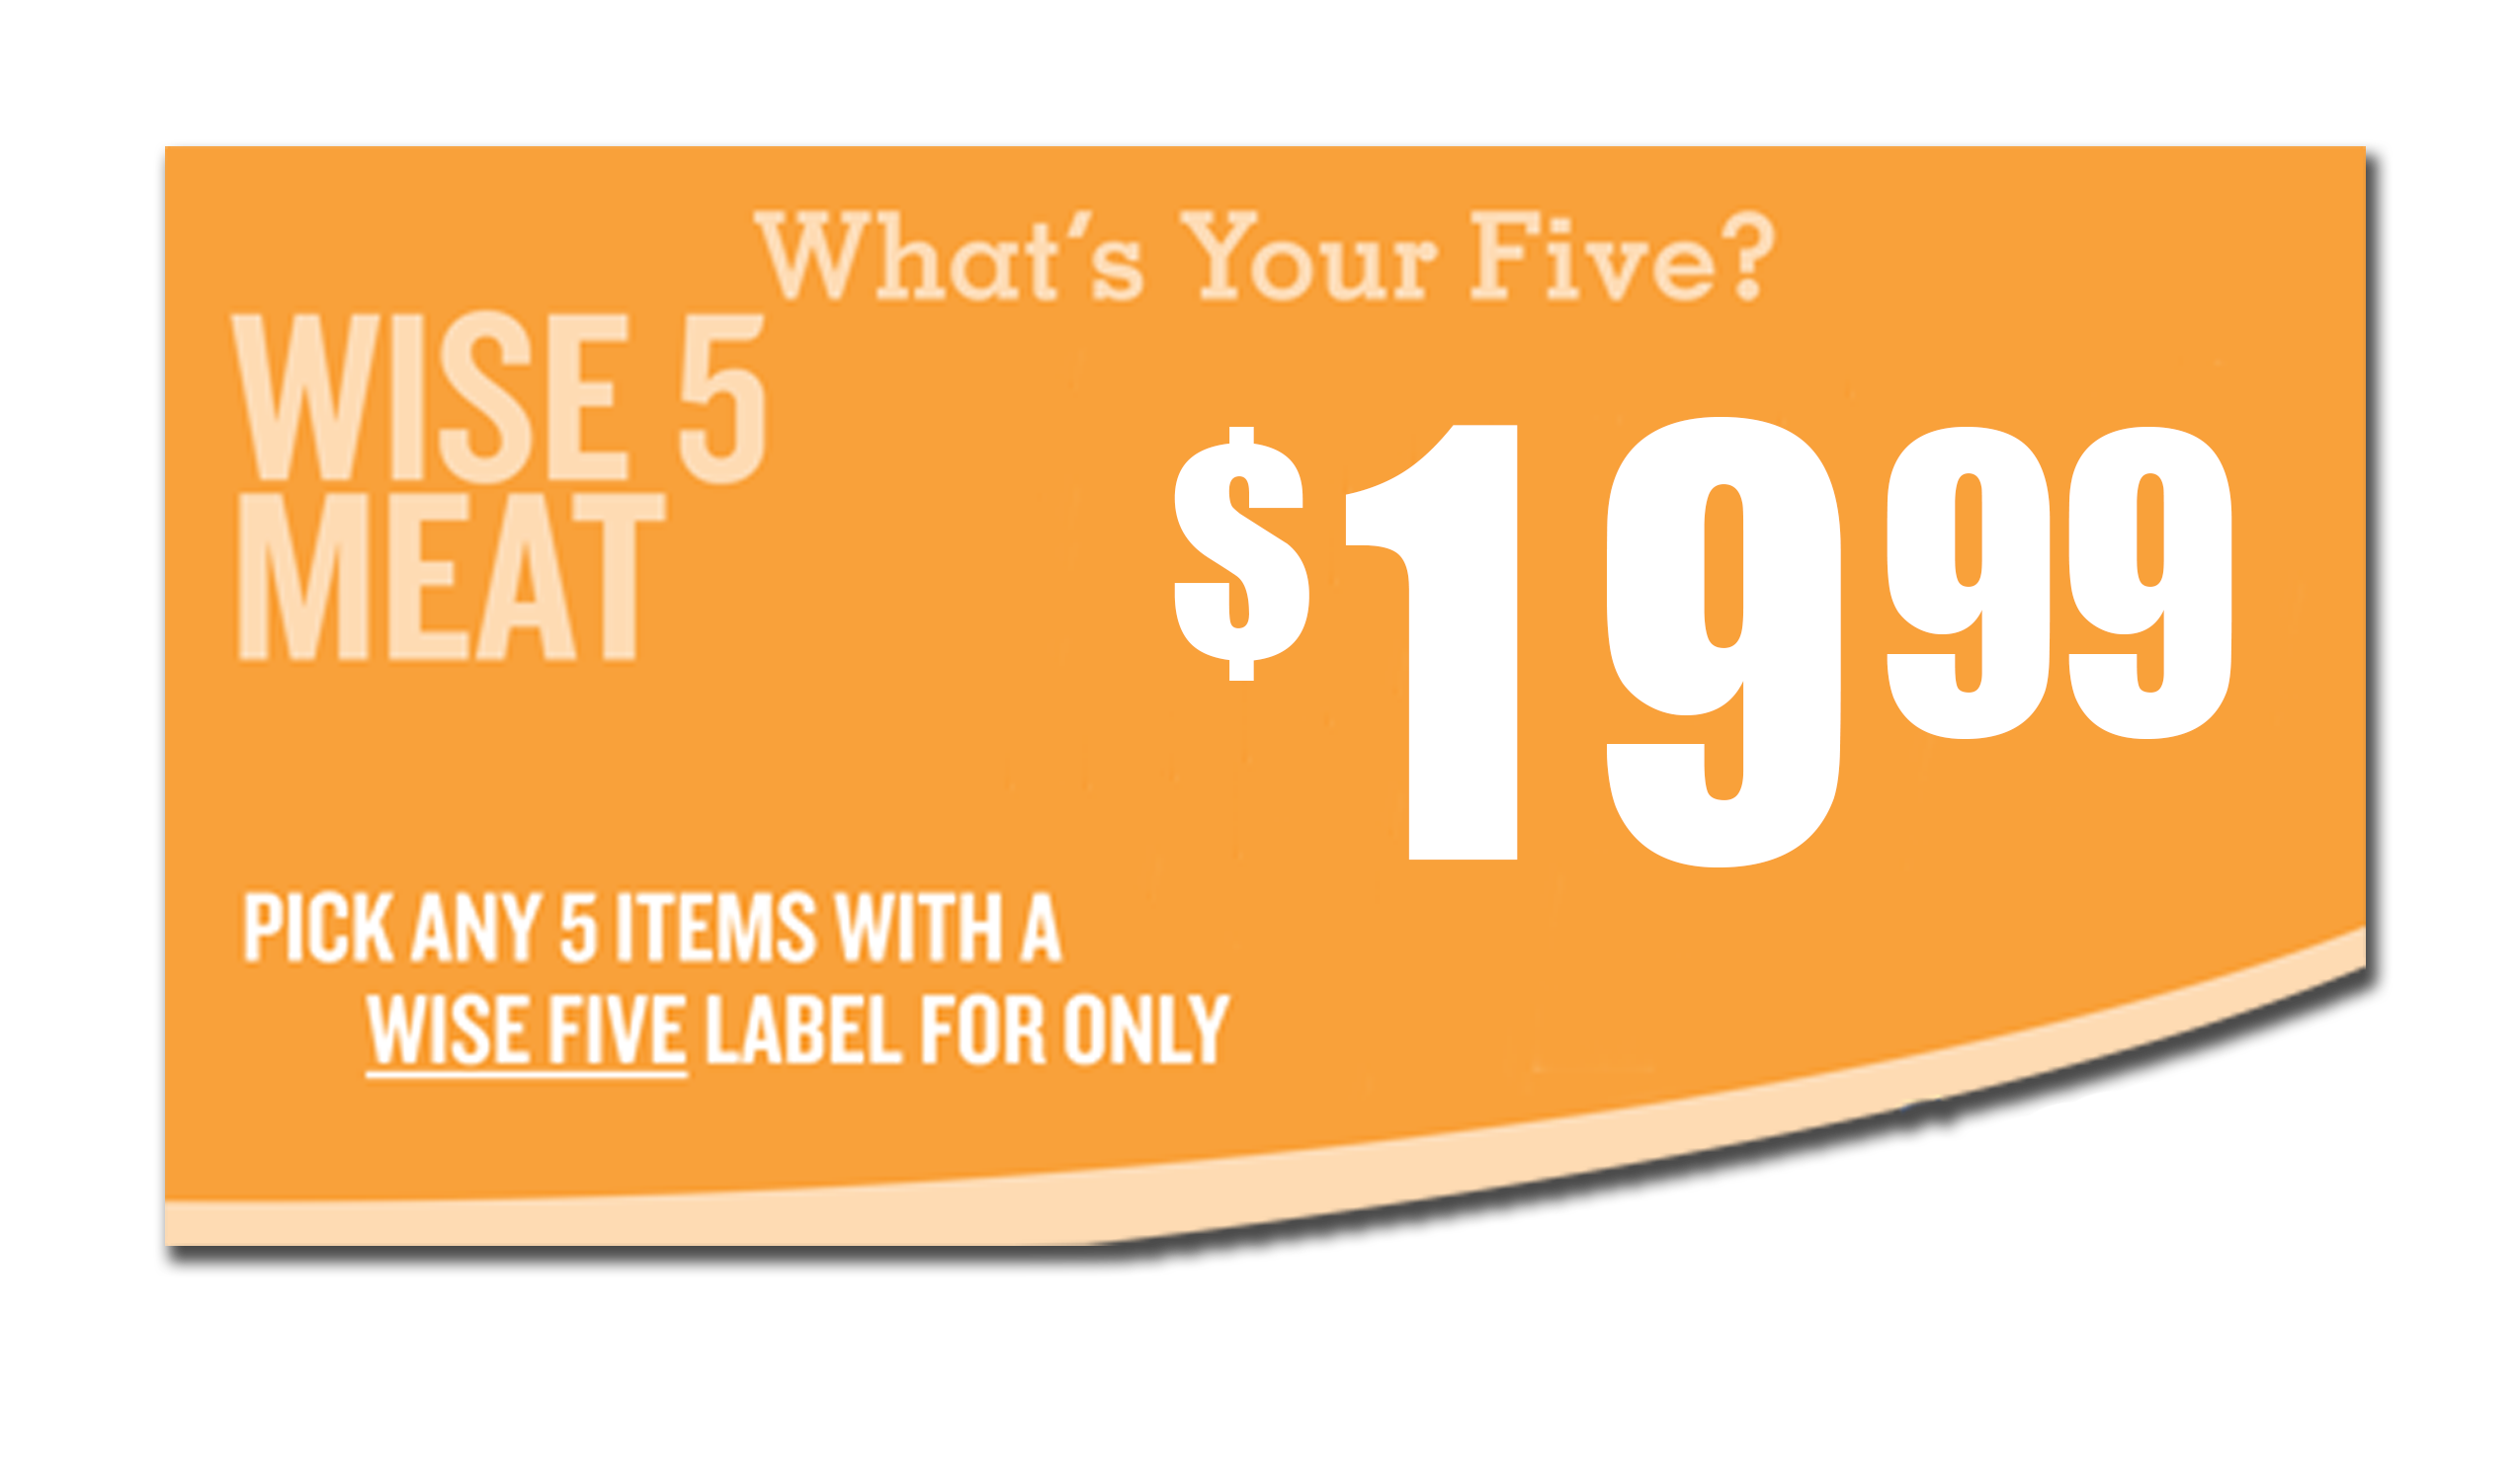 Pick any 5 items with a wise five label for only $19.99